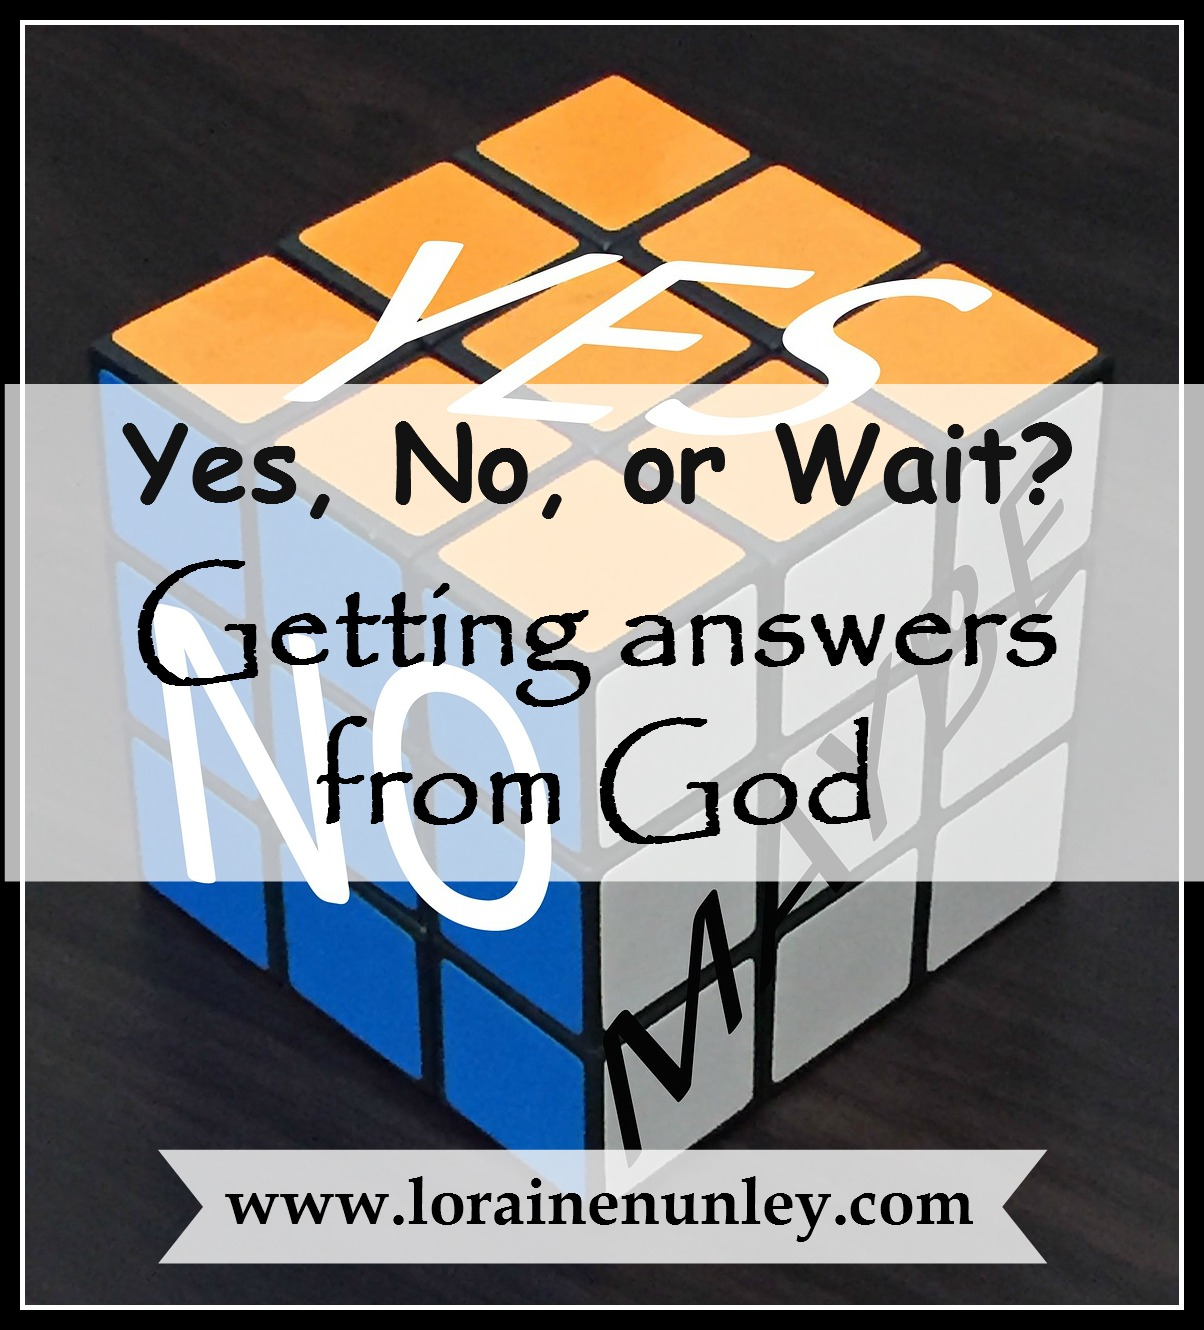 Yes, No, or Wait? Getting answers from God